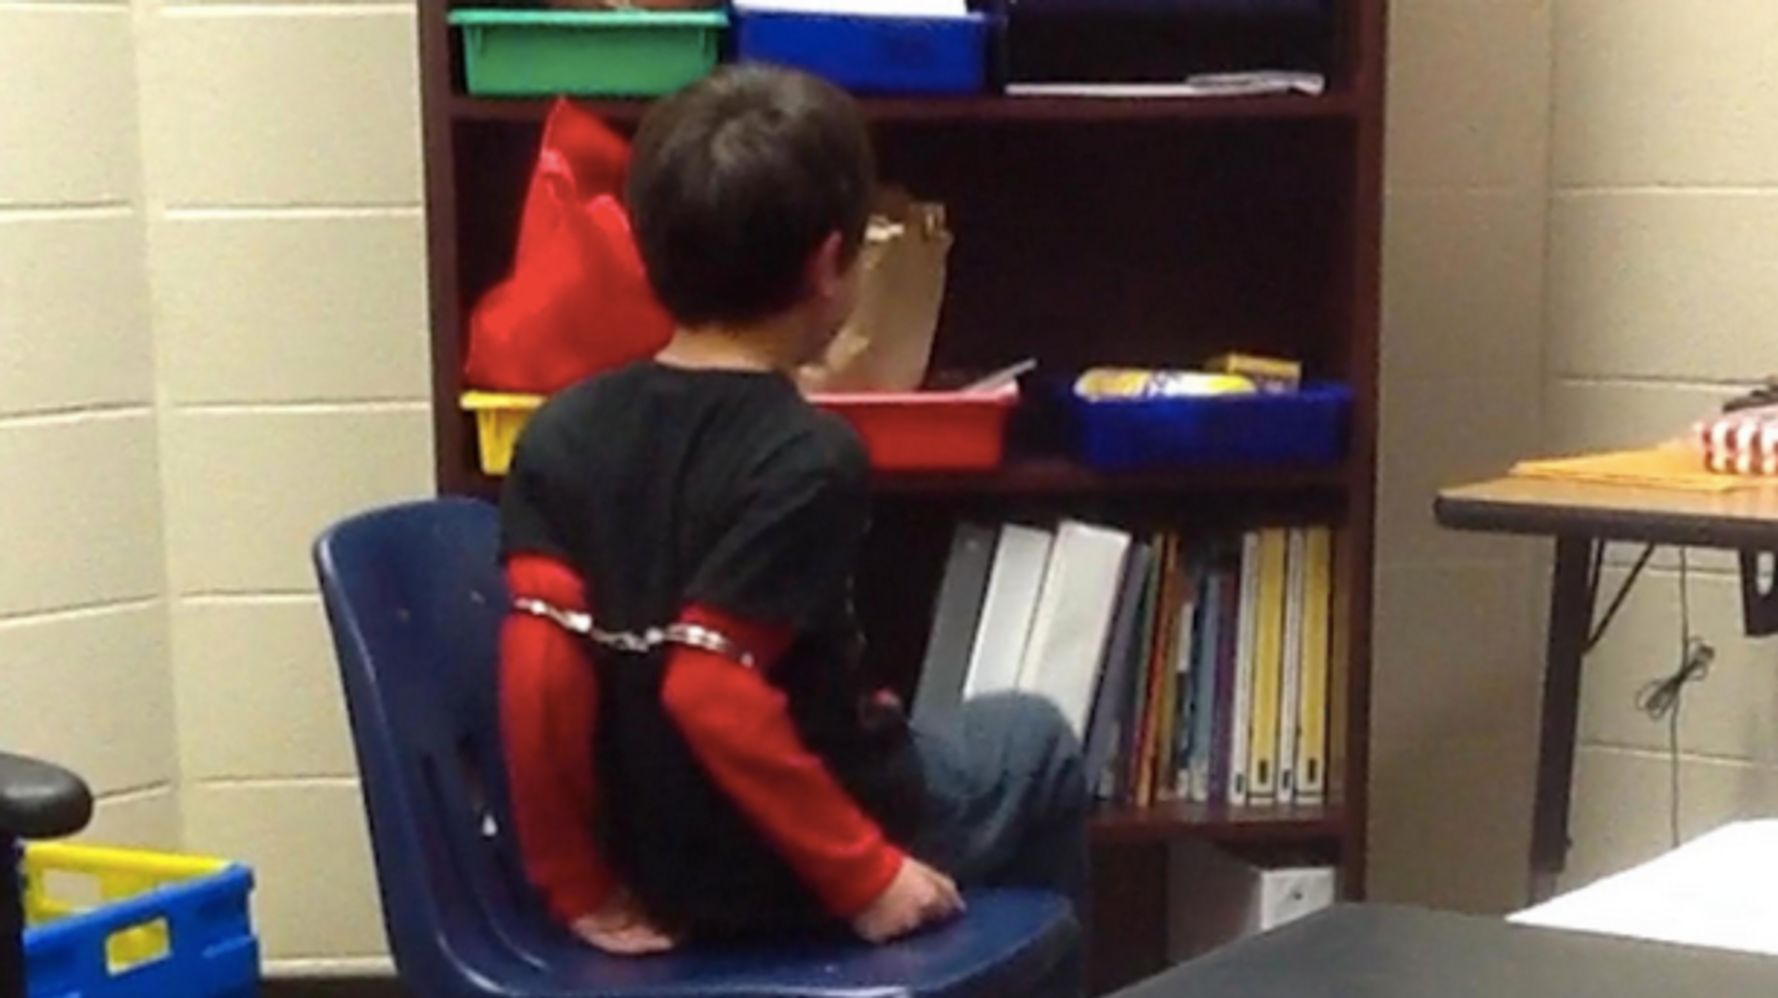 Handcuffing Little Kids May Not Be >> Federal Judge Rules Handcuffing Little Kids Above Their